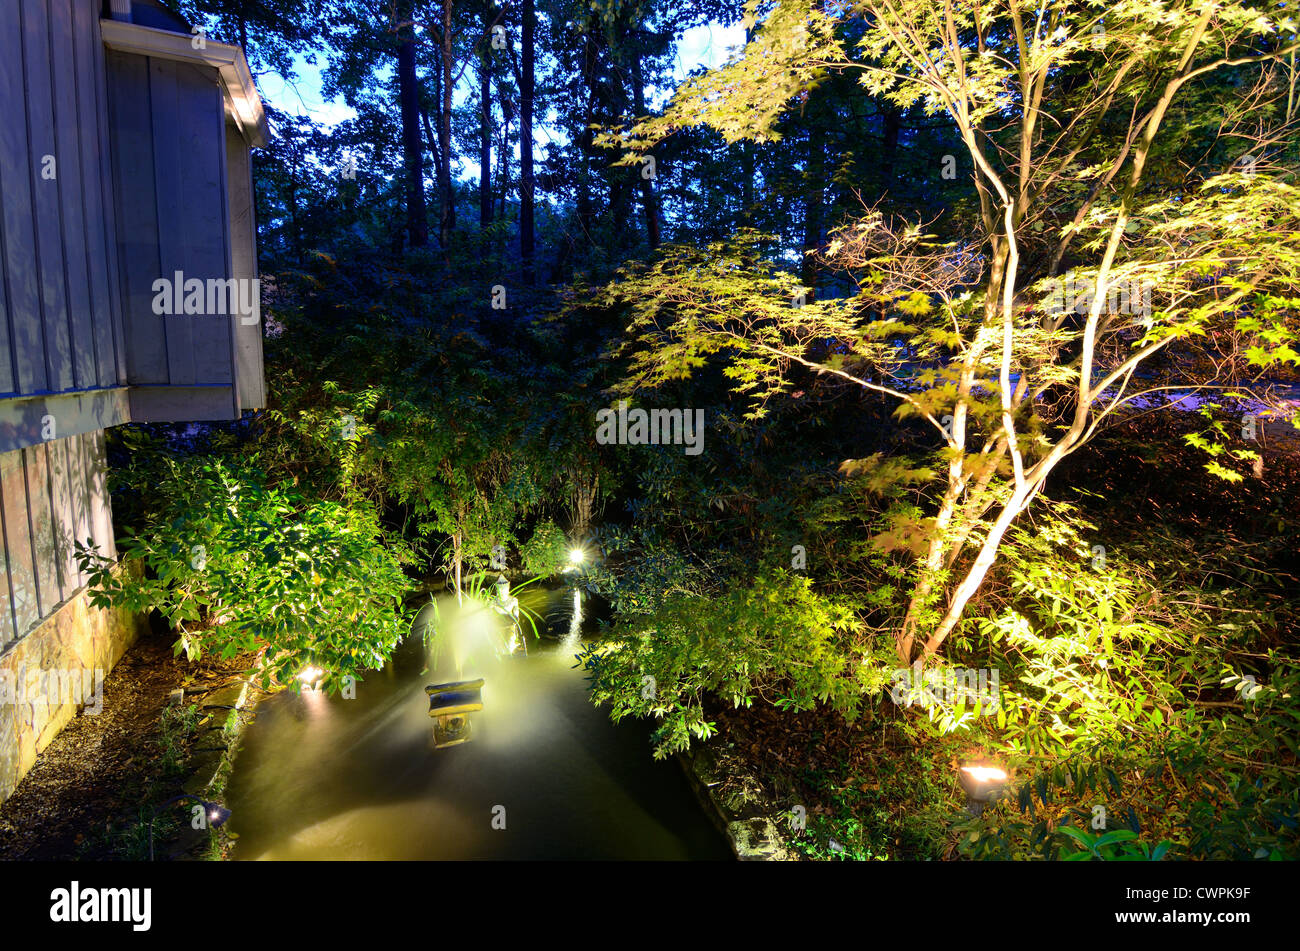 Small pond at a house - Stock Image